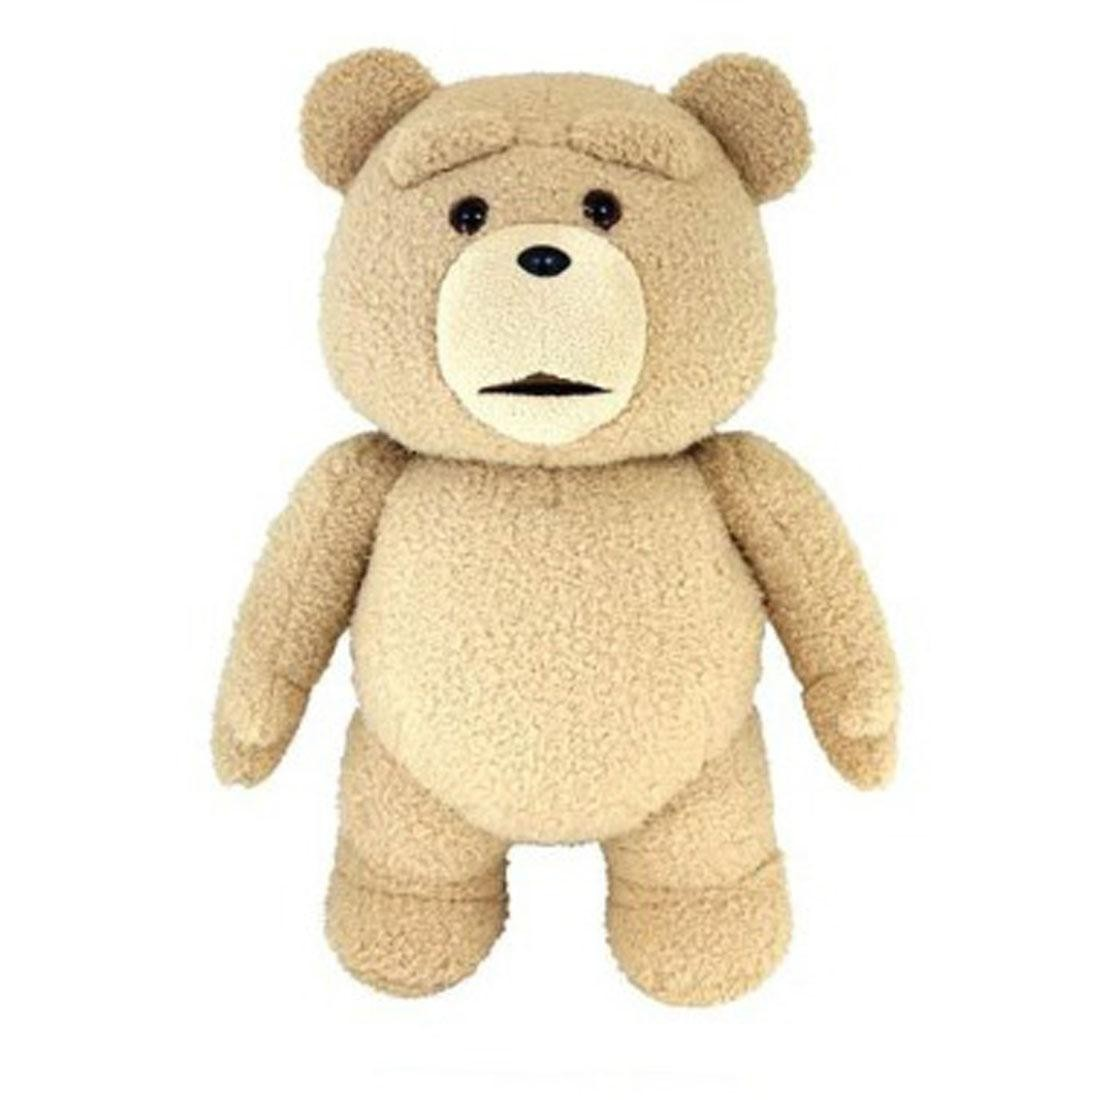 Ted 2 Ted w/ Sound - Explicit 24in Talking Plush (tan)